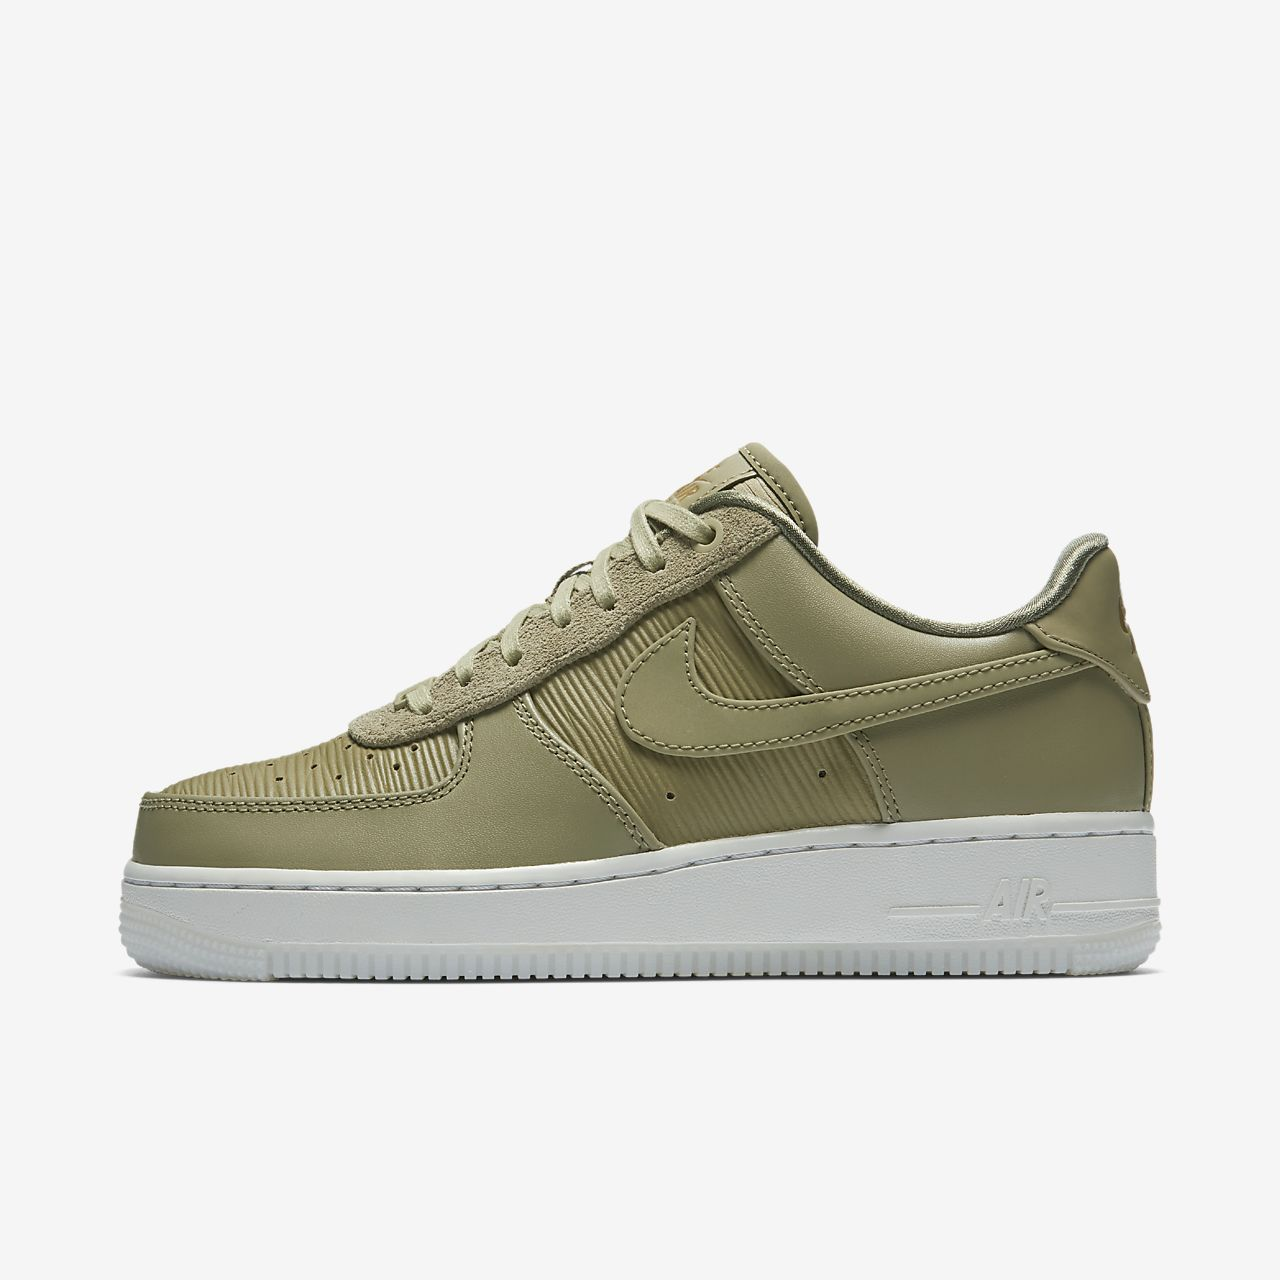 nike air force 1 beige nz